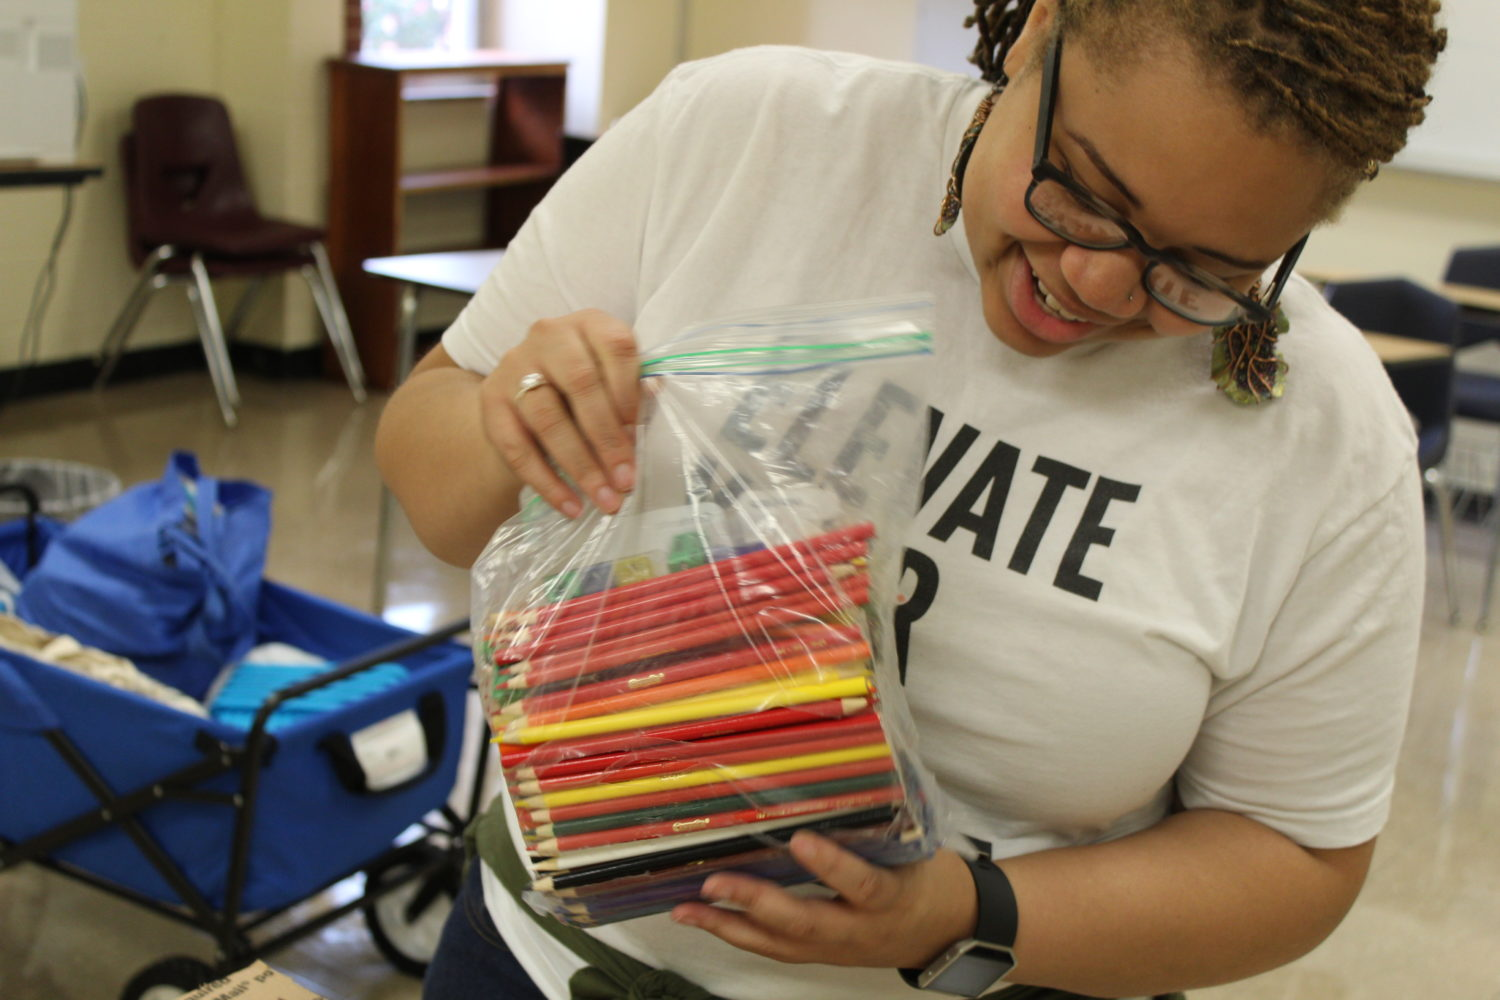 Shemena Shivers, a ninth grade science teacher at Melrose High School, smiles as she opens a package from a friend in Arizona. Through social media, Shivers has raised $1600 for her classroom.